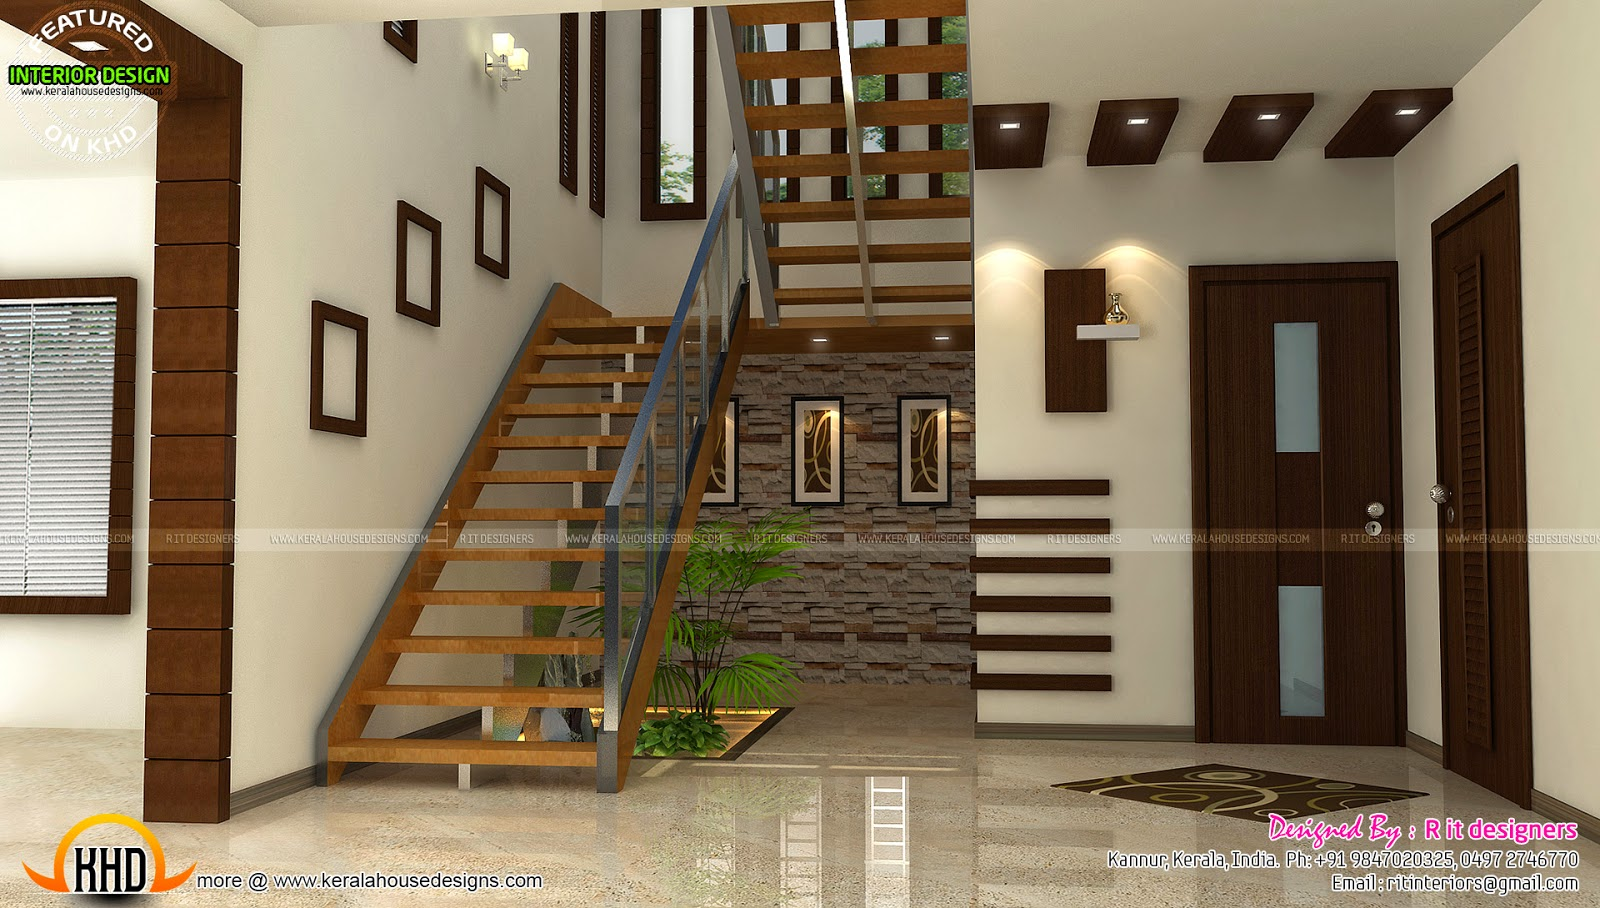 Staircase bedroom dining interiors kerala home design for House interior design ideas for small house